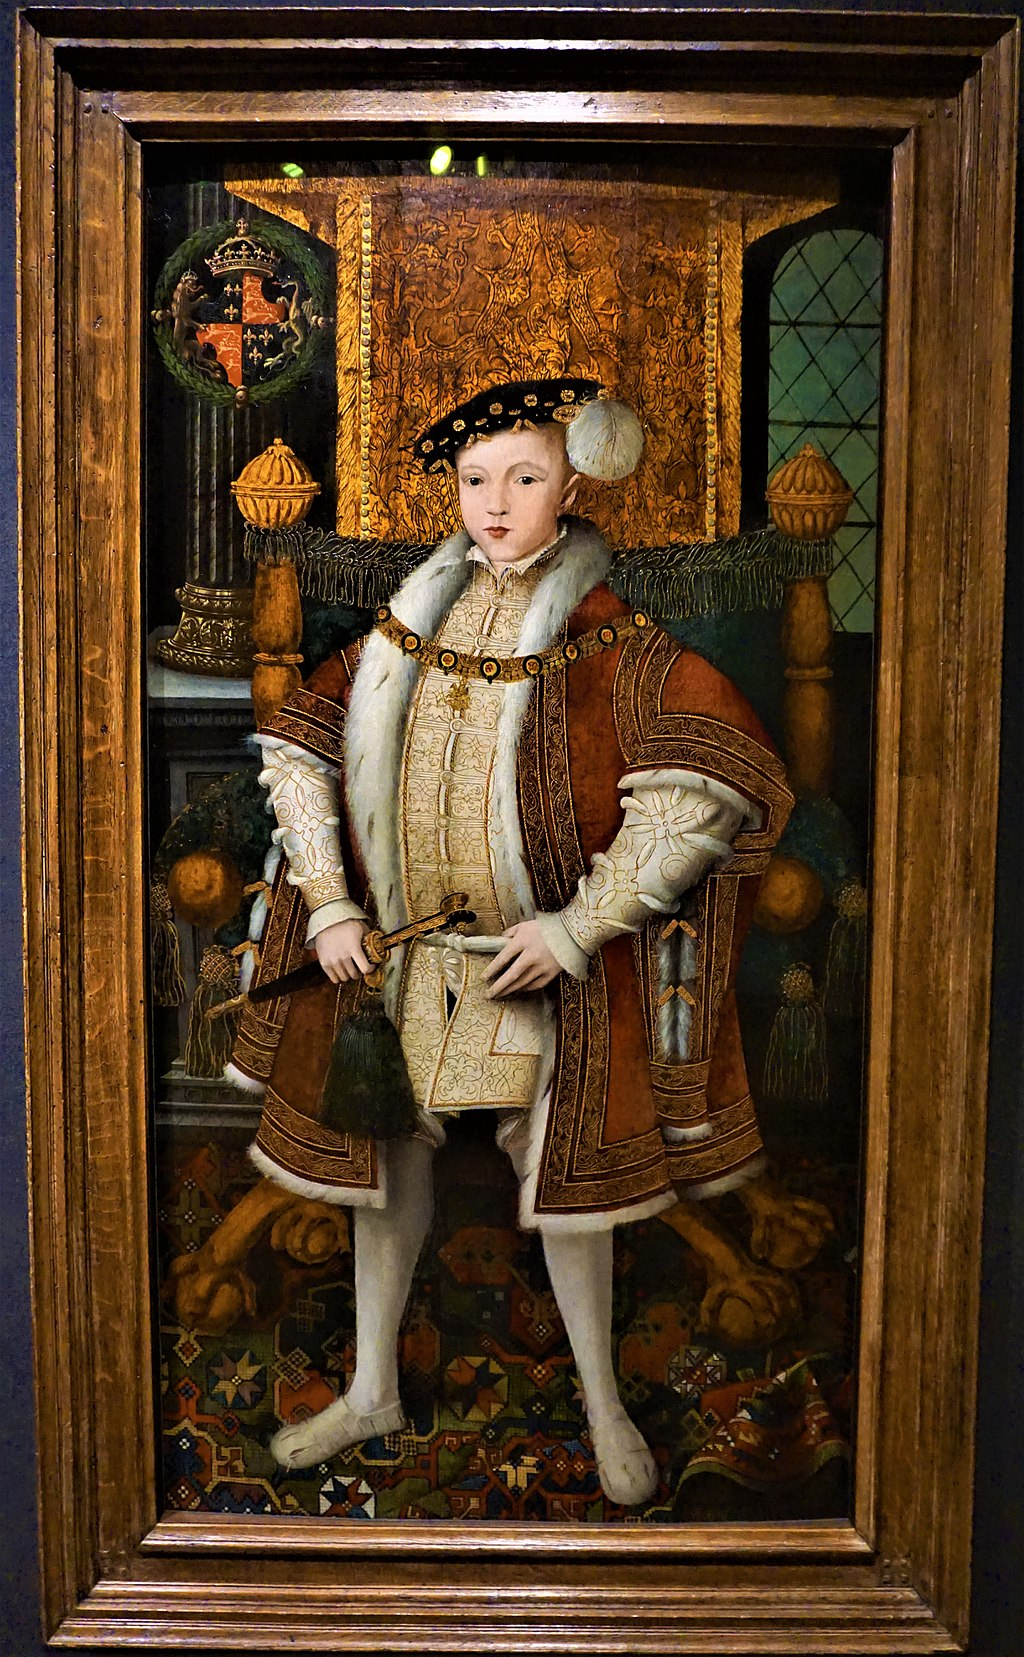 King Edward VI of England - Royal Portrait